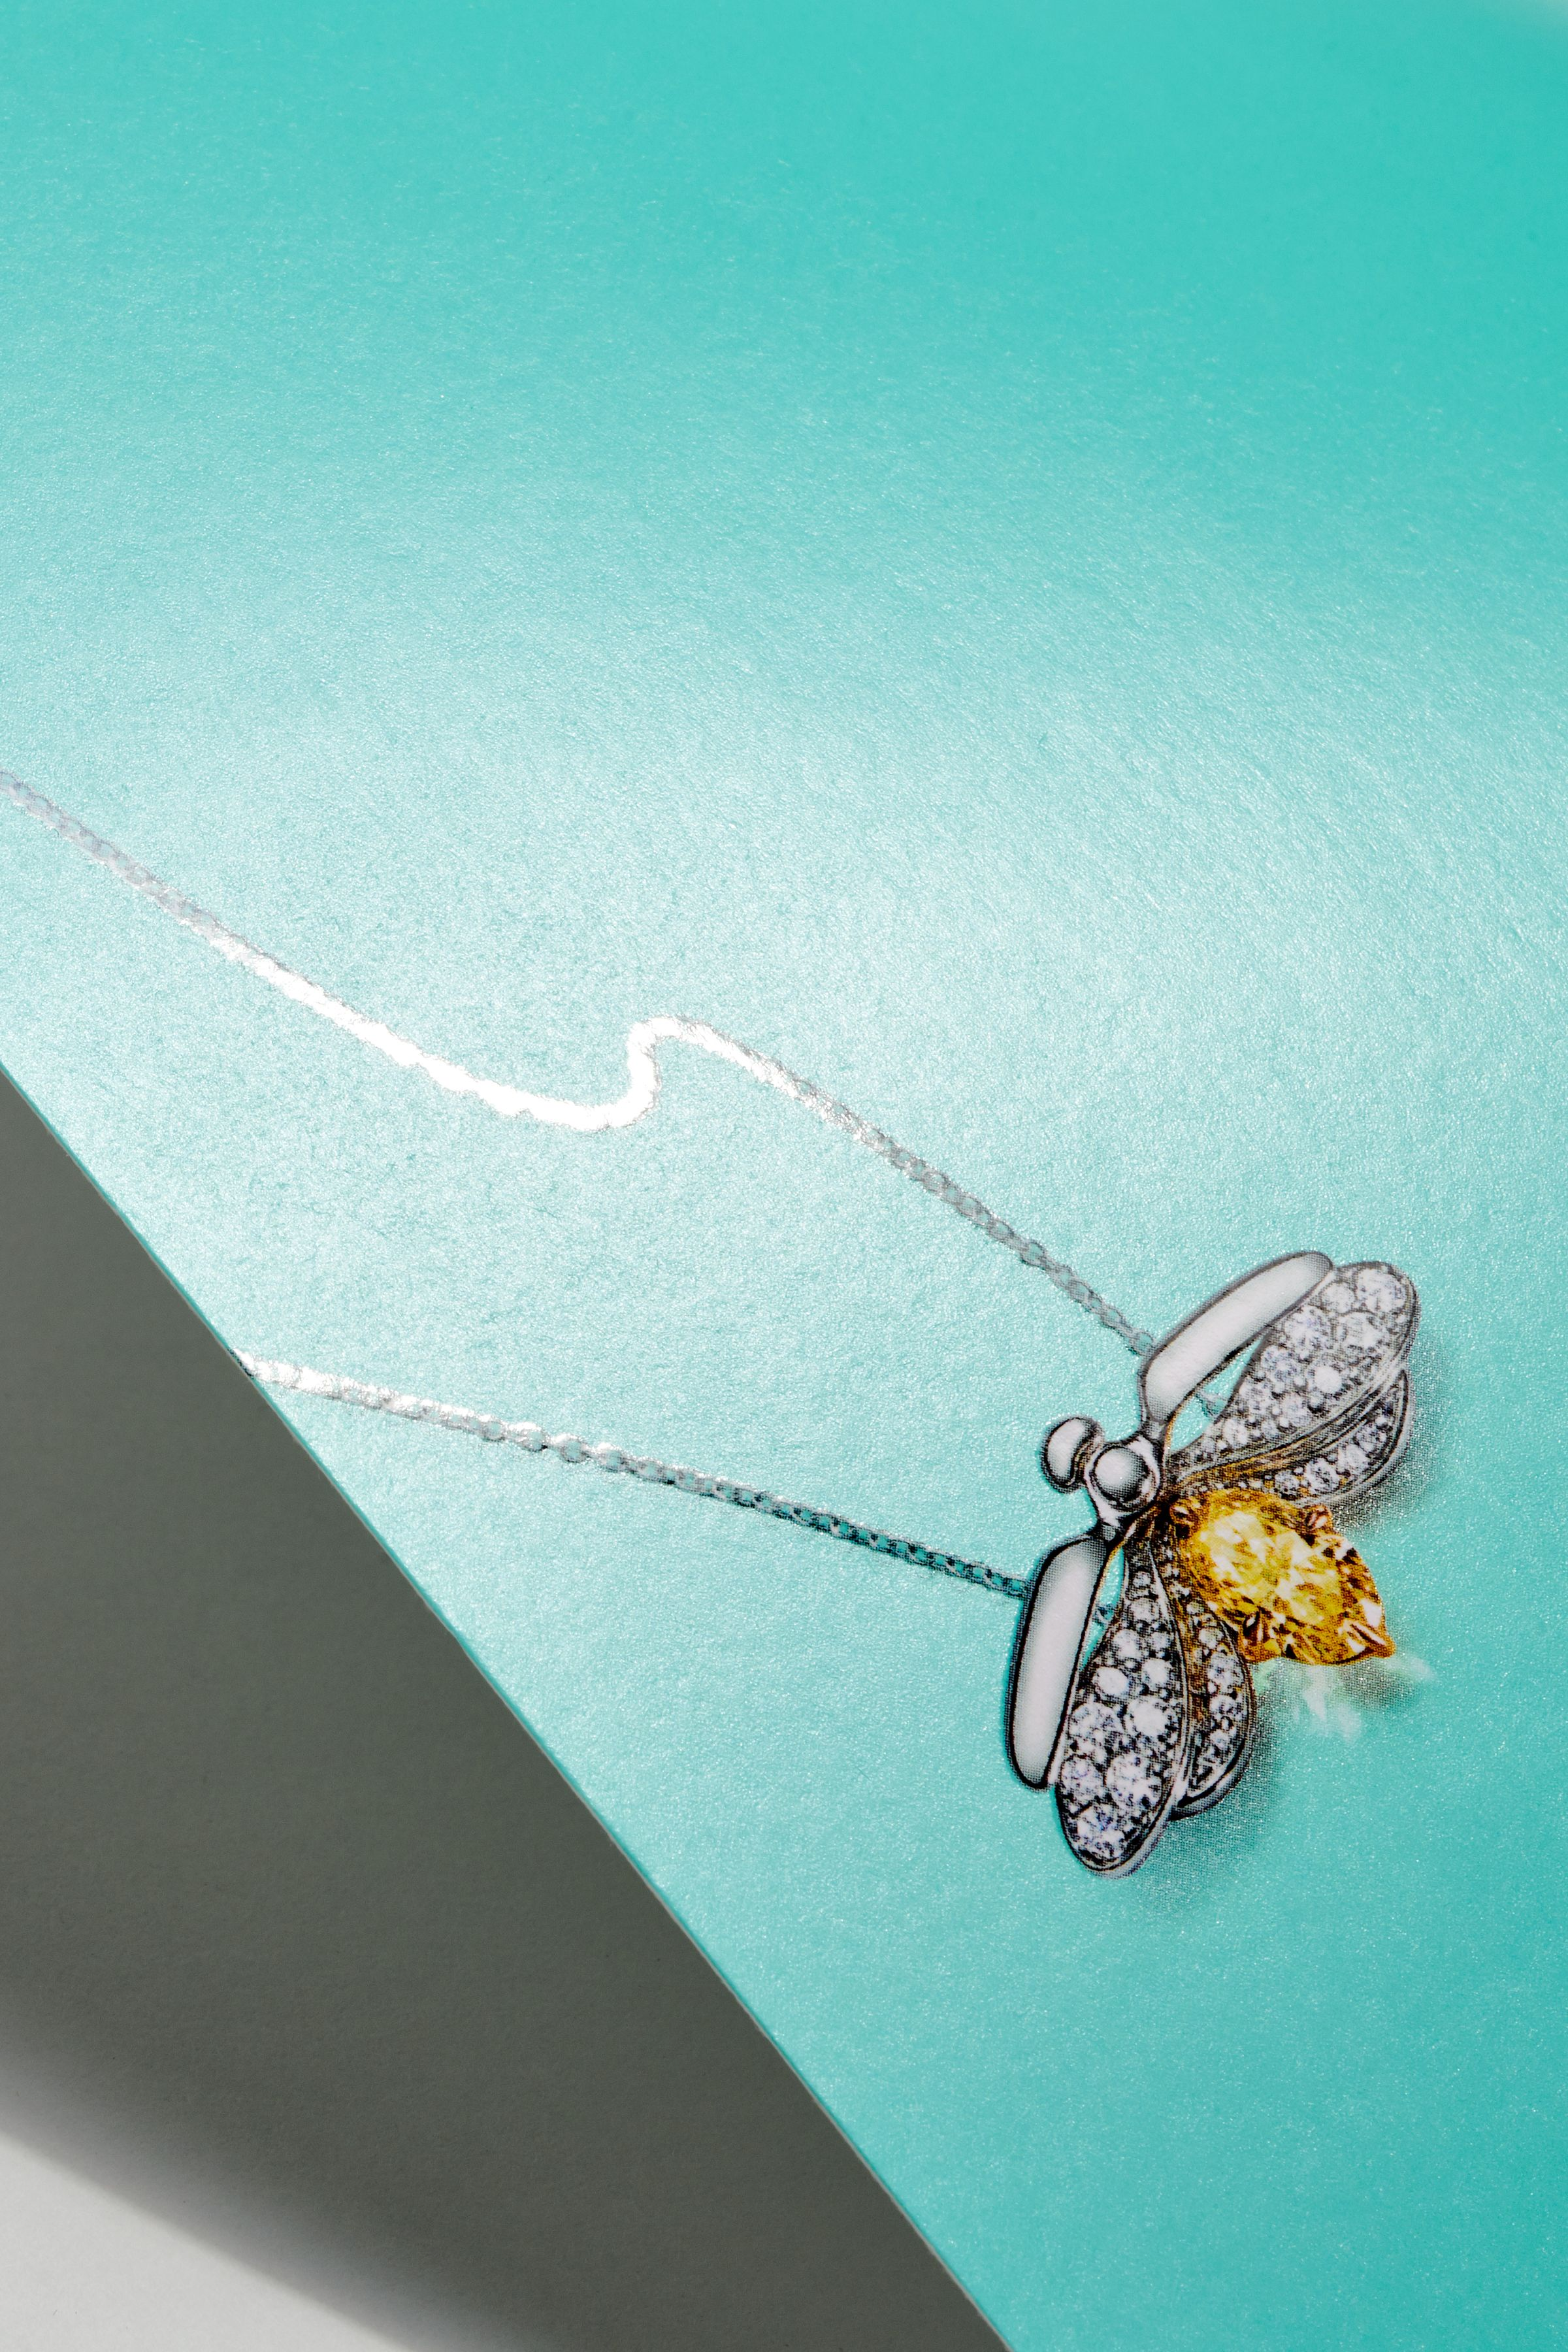 This is Tiffany bee necklace detail with spot gloss